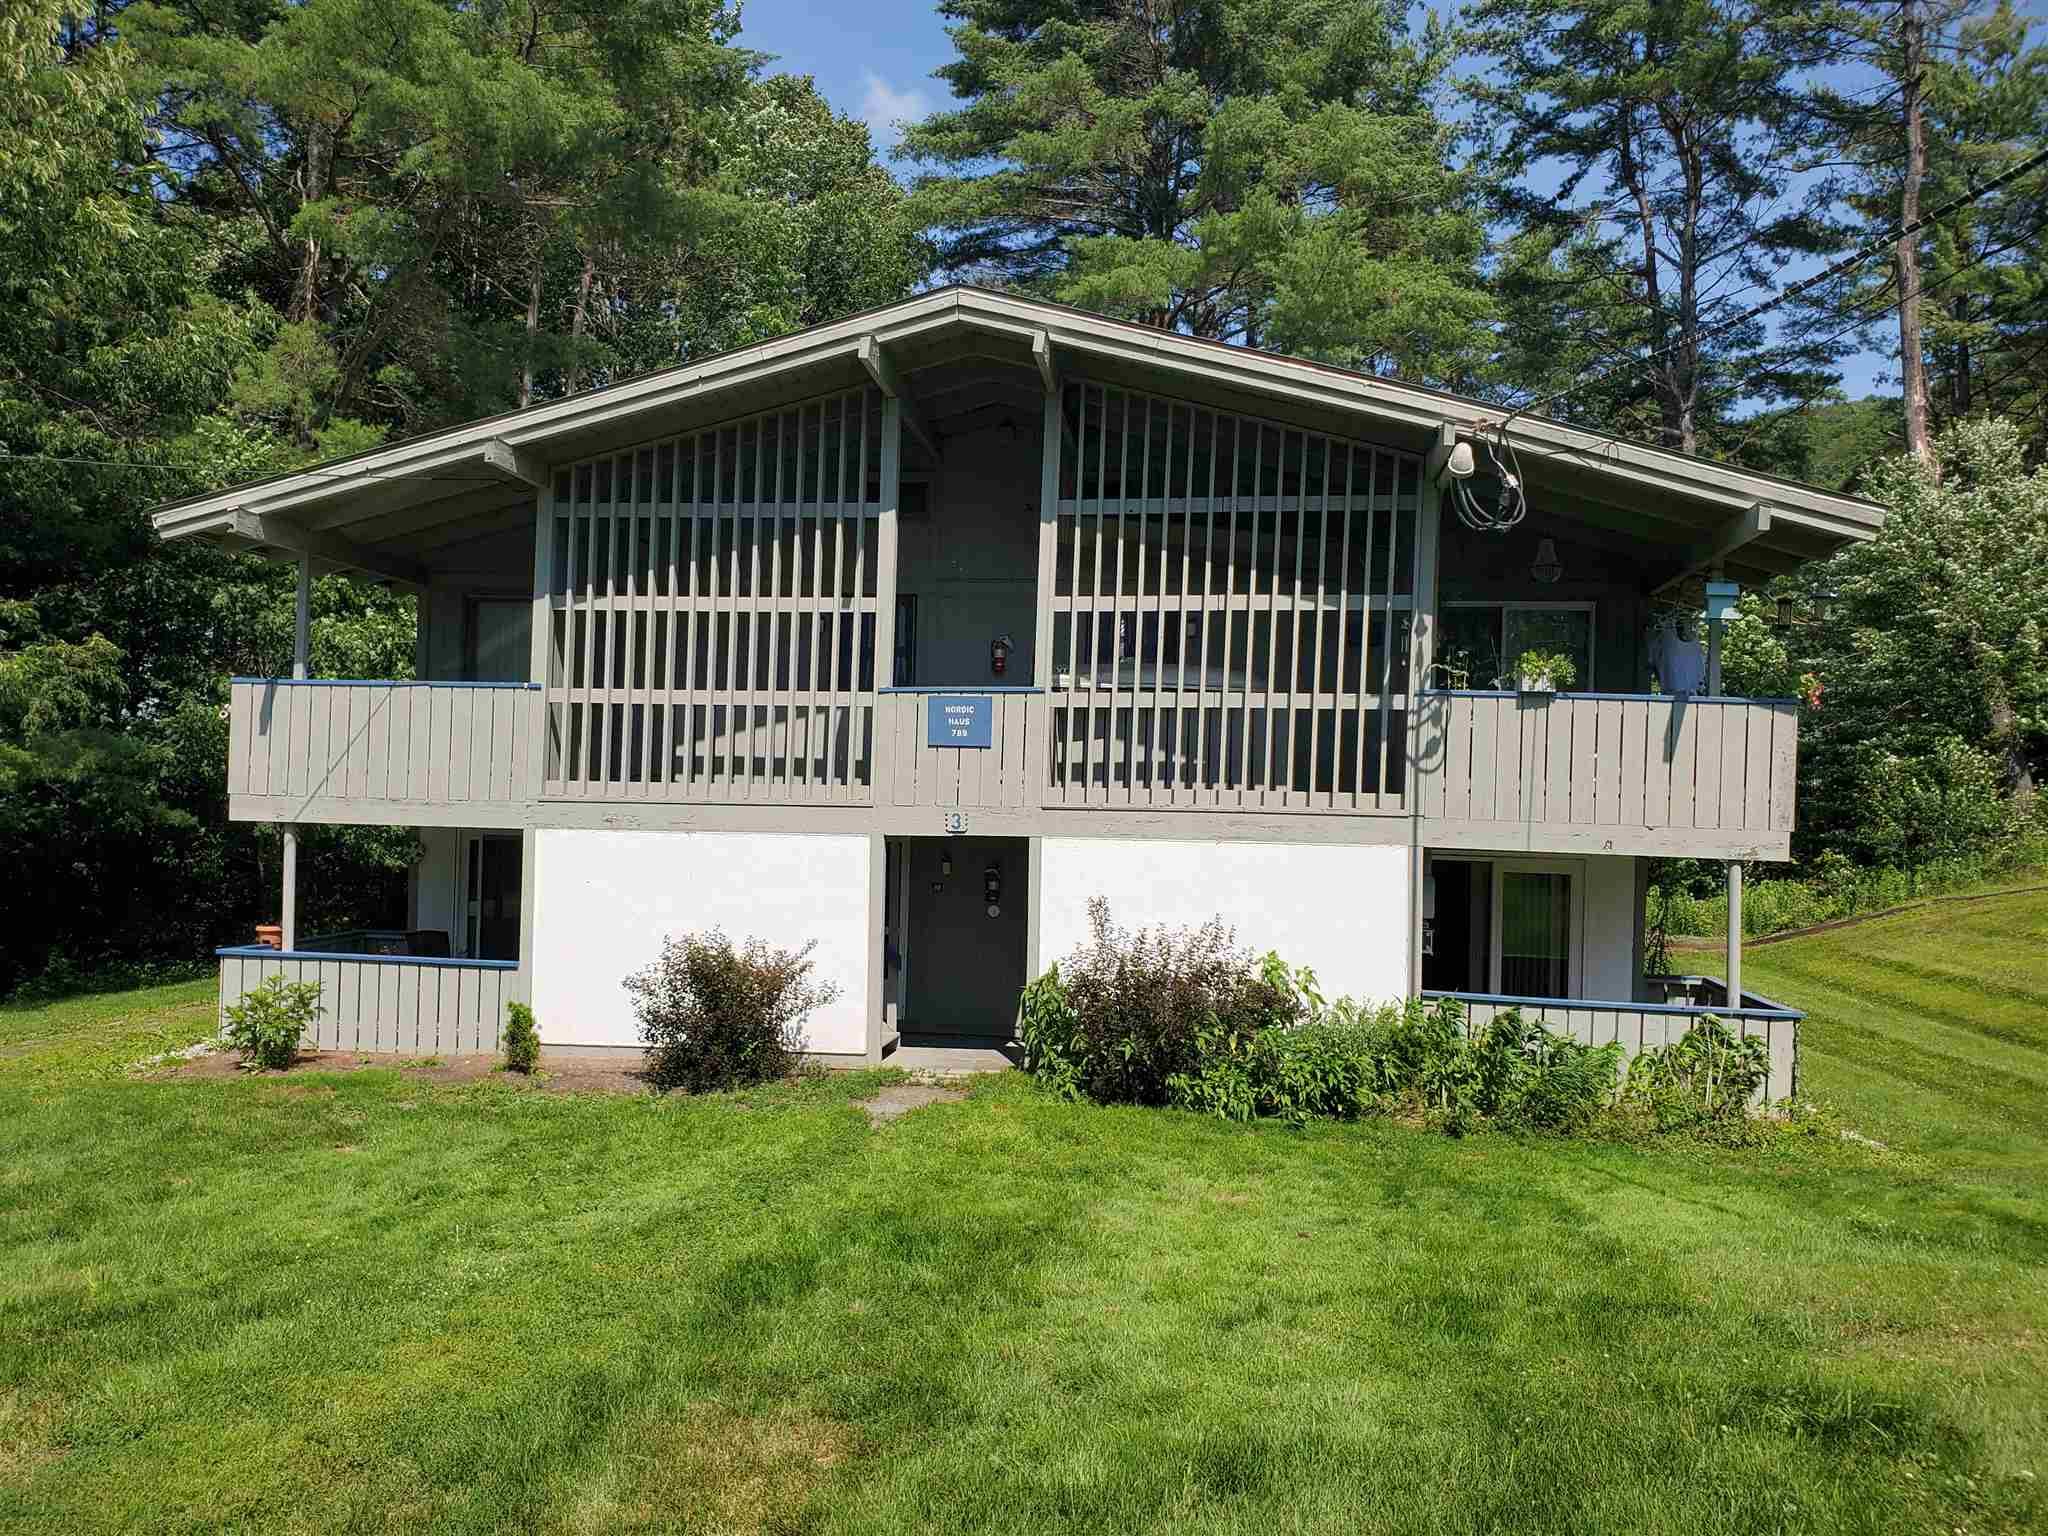 Village of Brownsville in Town of West Windsor VT  05062 Condo for sale $List Price is $85,500